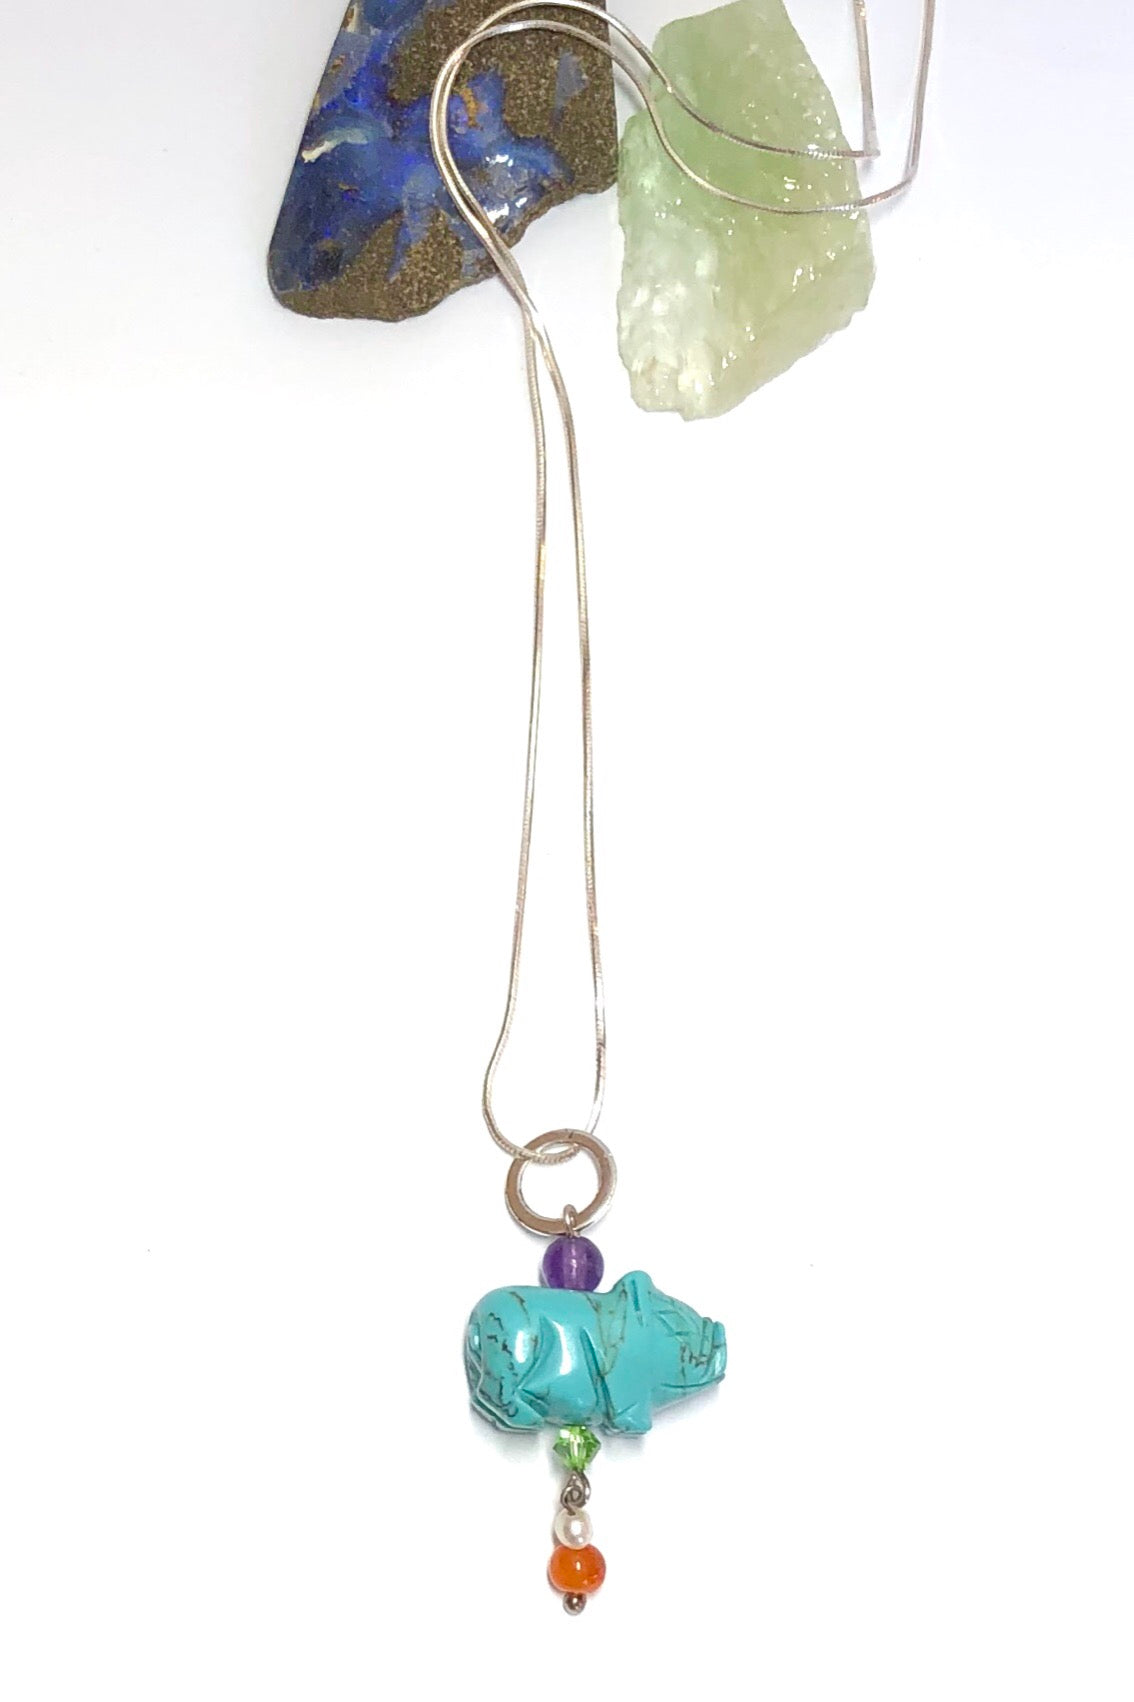 Pendant tiny Howlite Pig on Silver Chain features pig shape turquoise dyed Howlite gemstone with an amethyst top bead, Carnelian and pearl bead with a green crystal bead.